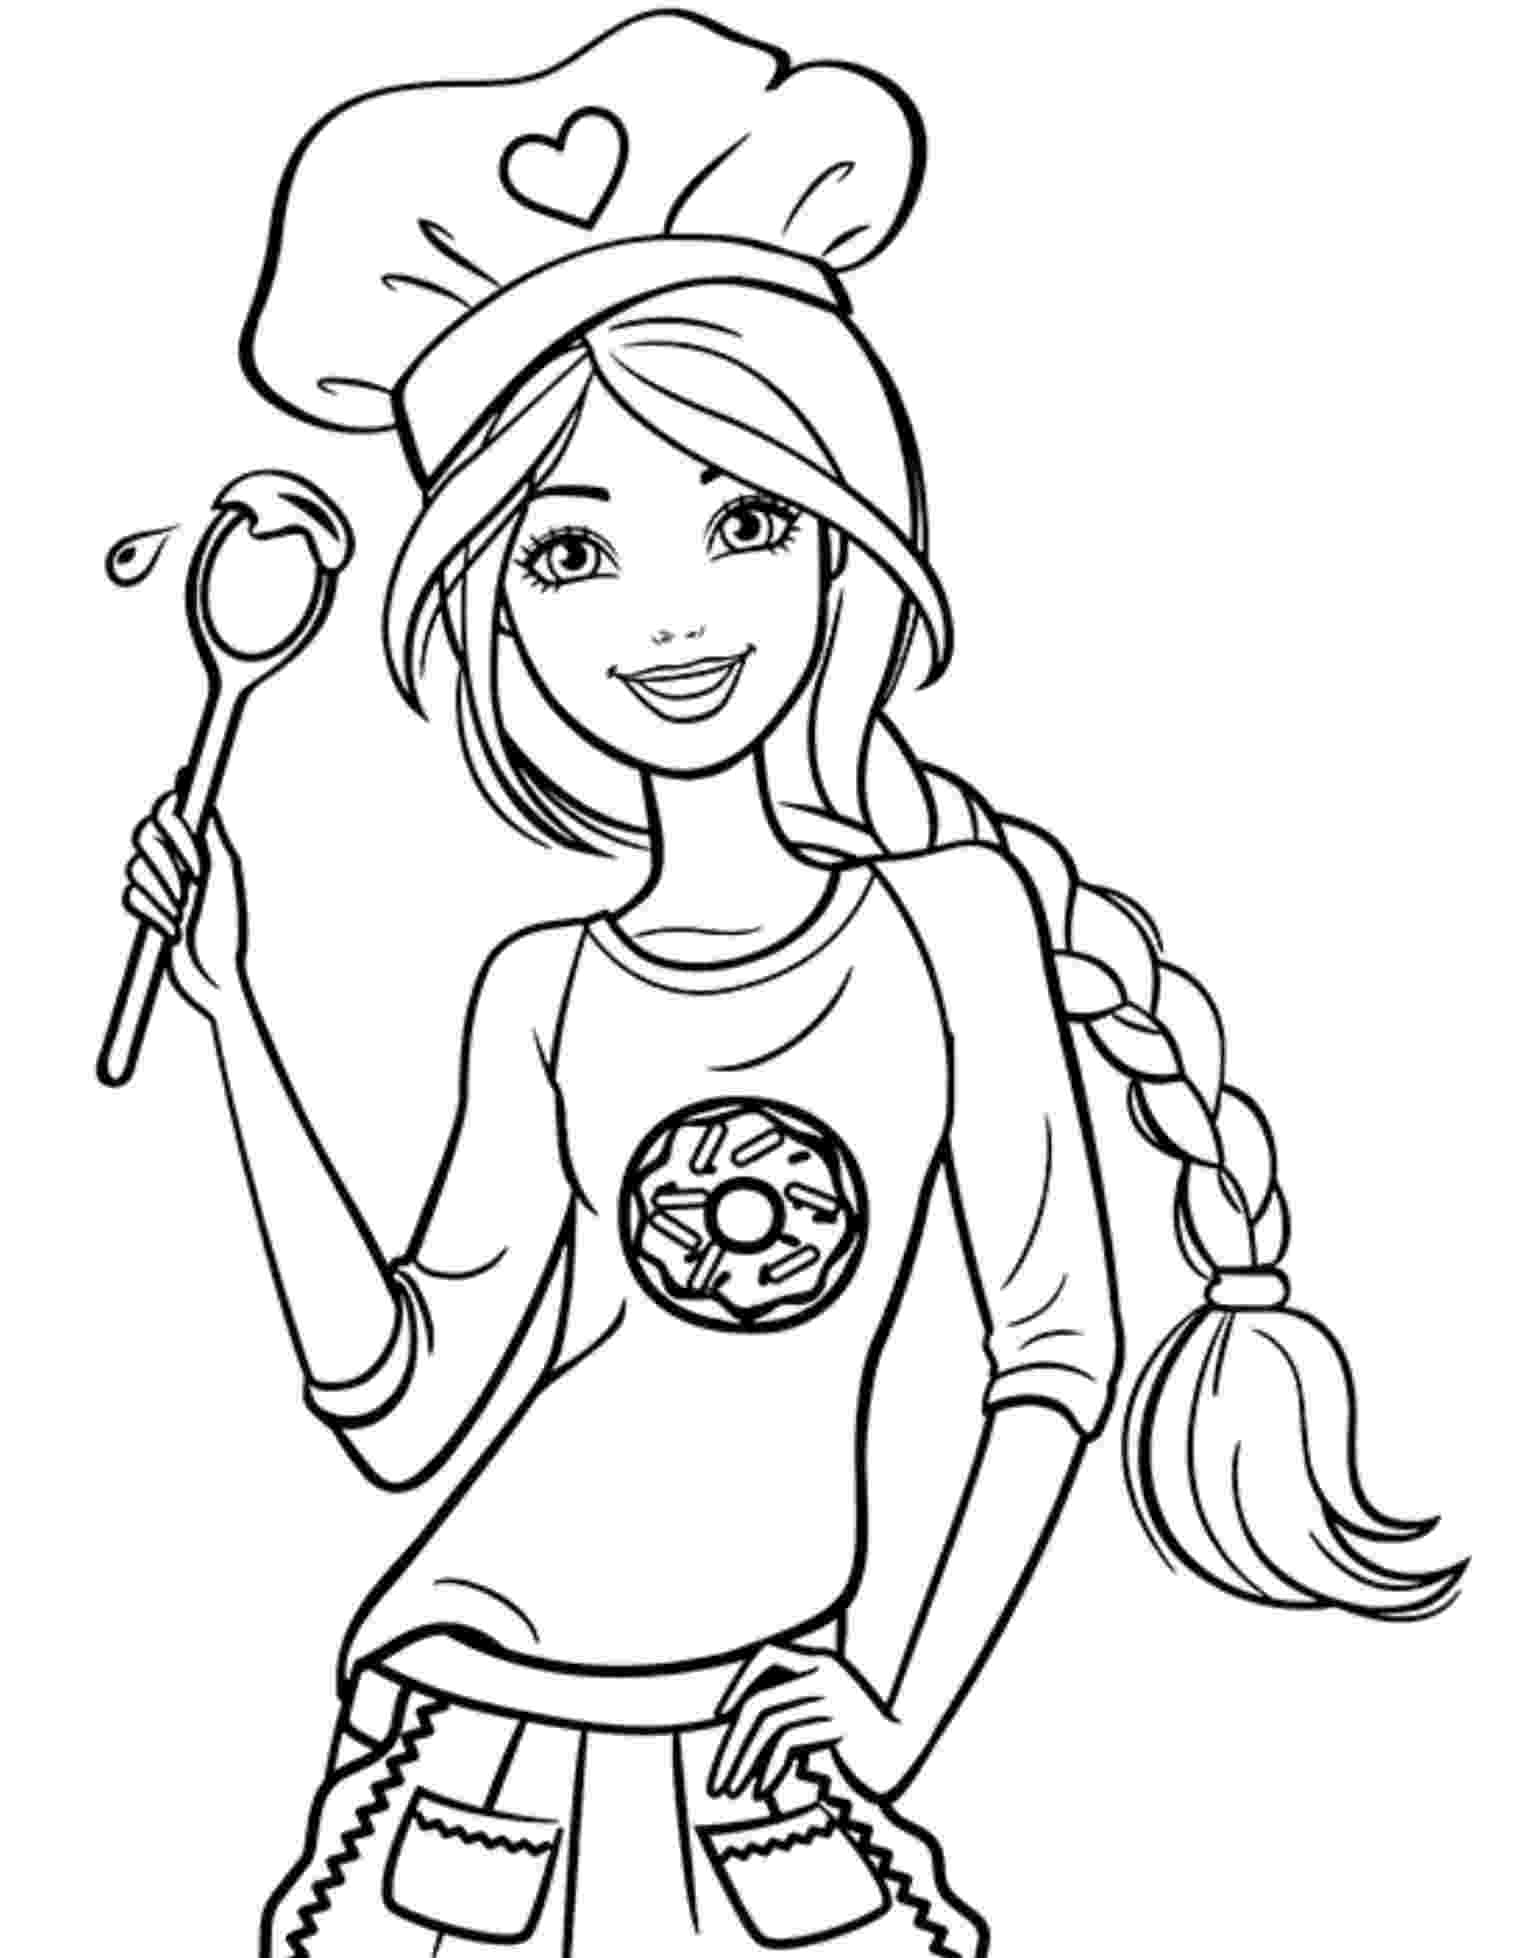 barbie free coloring pages barbie to print barbie kids coloring pages coloring free barbie pages